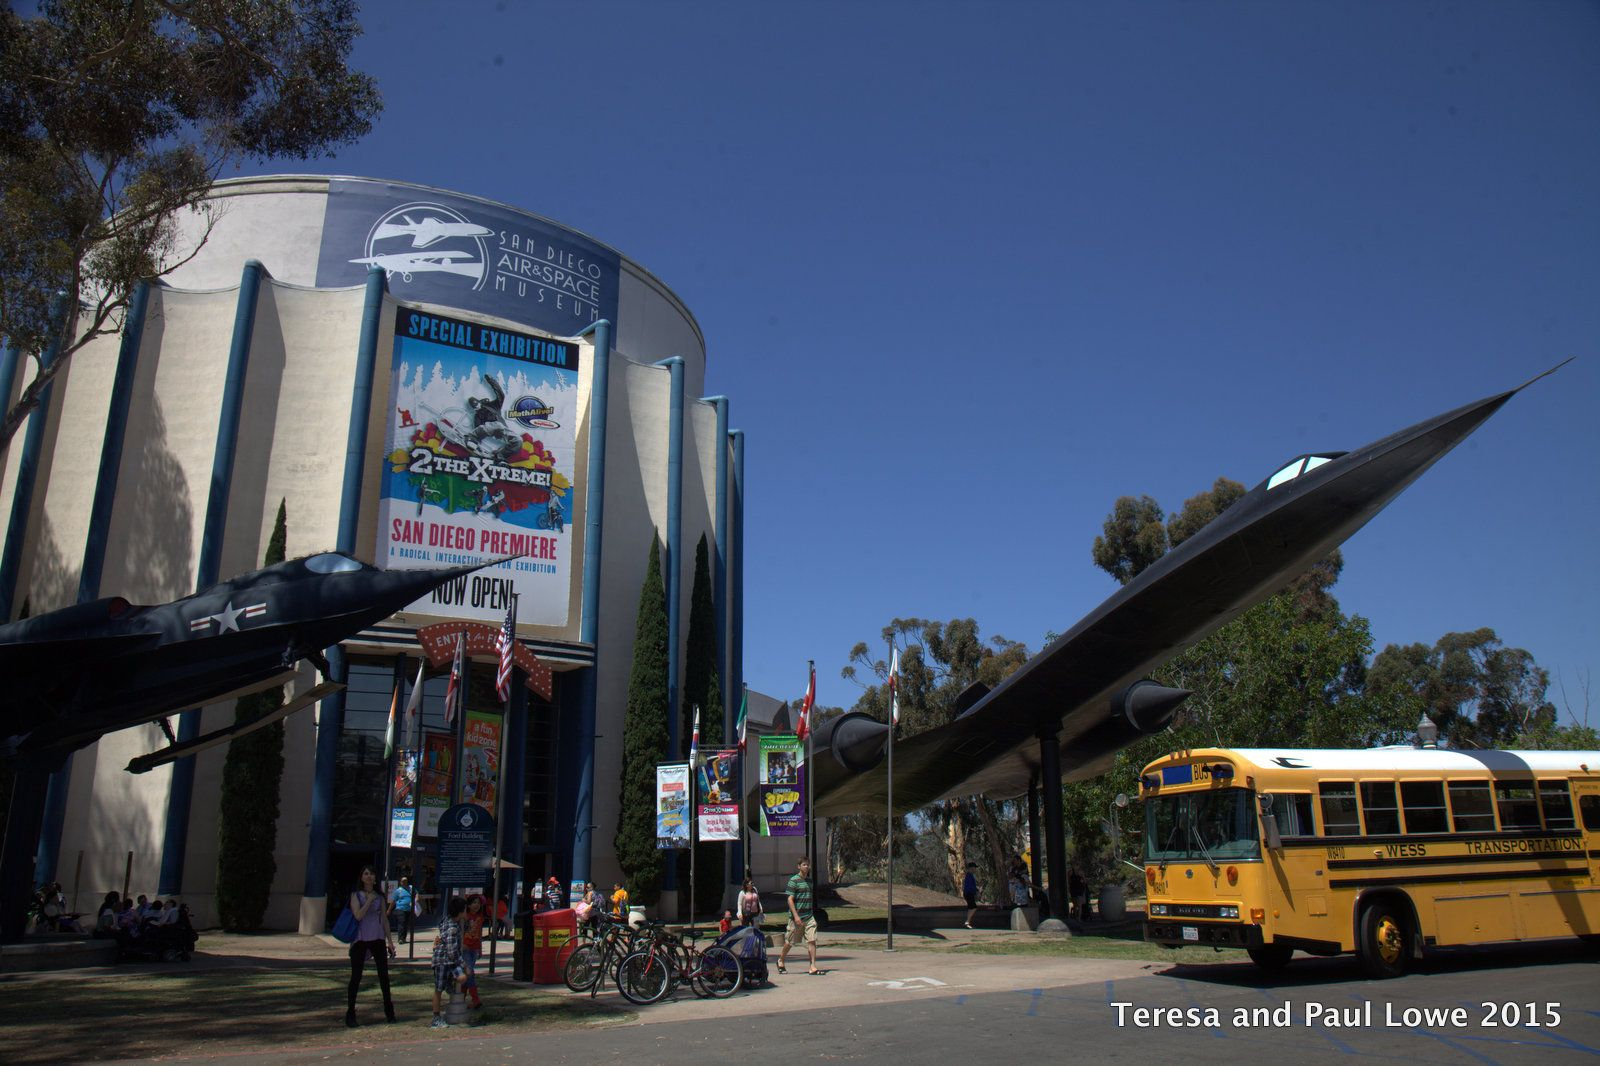 Many summer vacation programs are available for kids and families to visit the any museums like the San Diego Aerospace museum in Balboa Park, just 20 minutes away by bicycle from the Hard Rock Hotel San Diego!